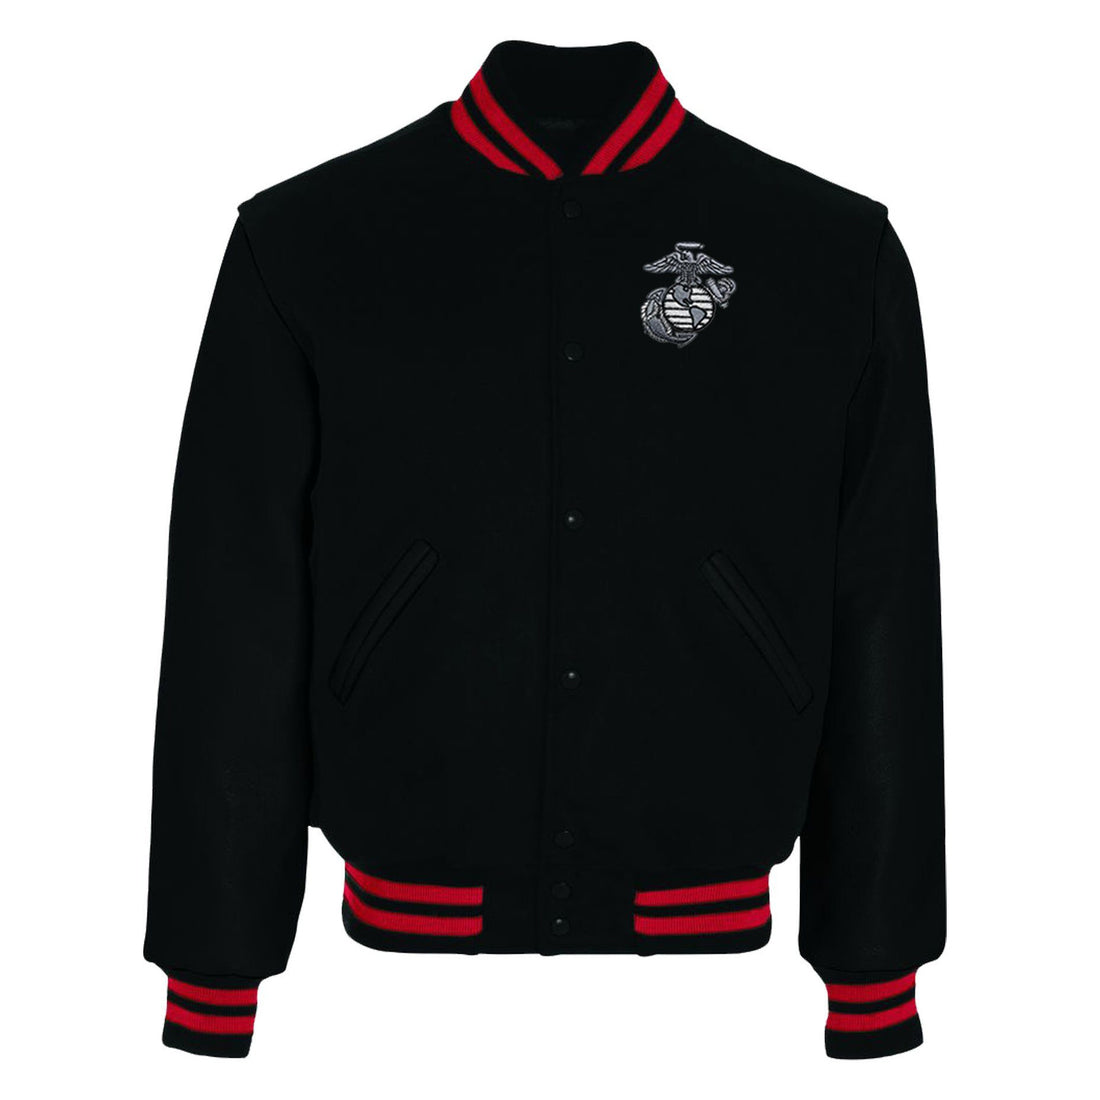 Custom USMC Varsity Jacket Black and Scarlet - Marine Corps Direct